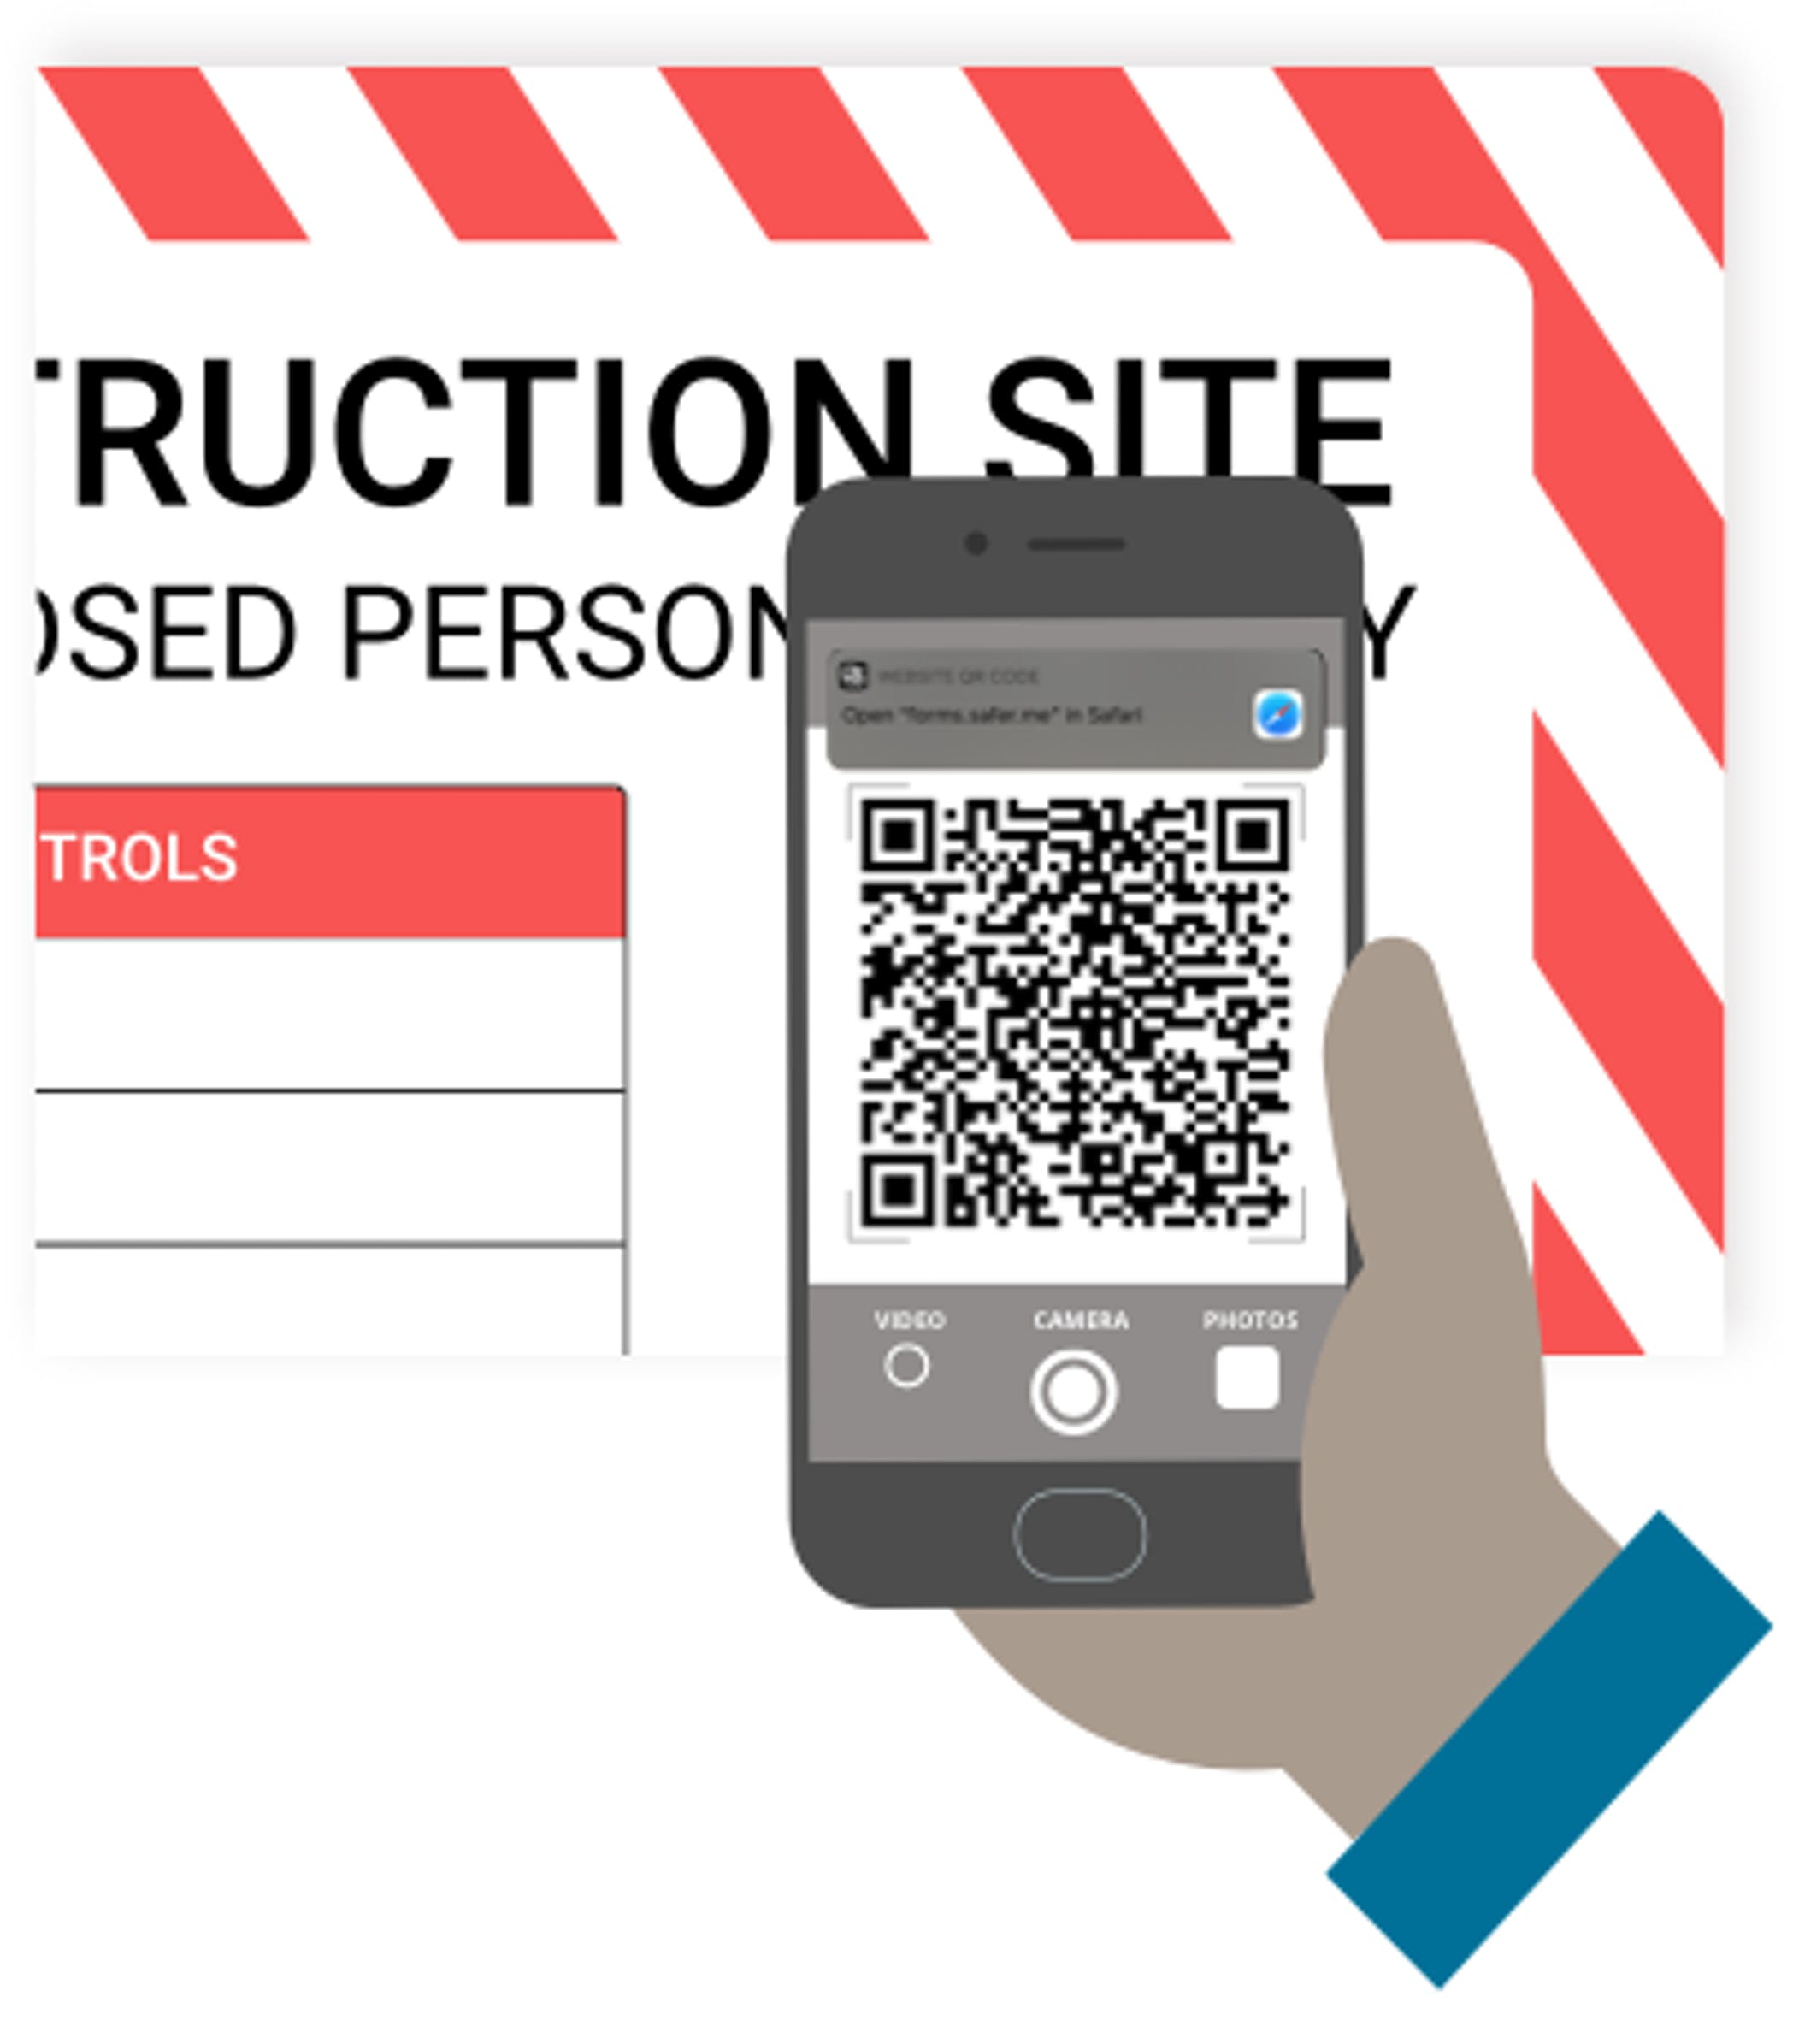 Safety indusction via QR code scan at construction site